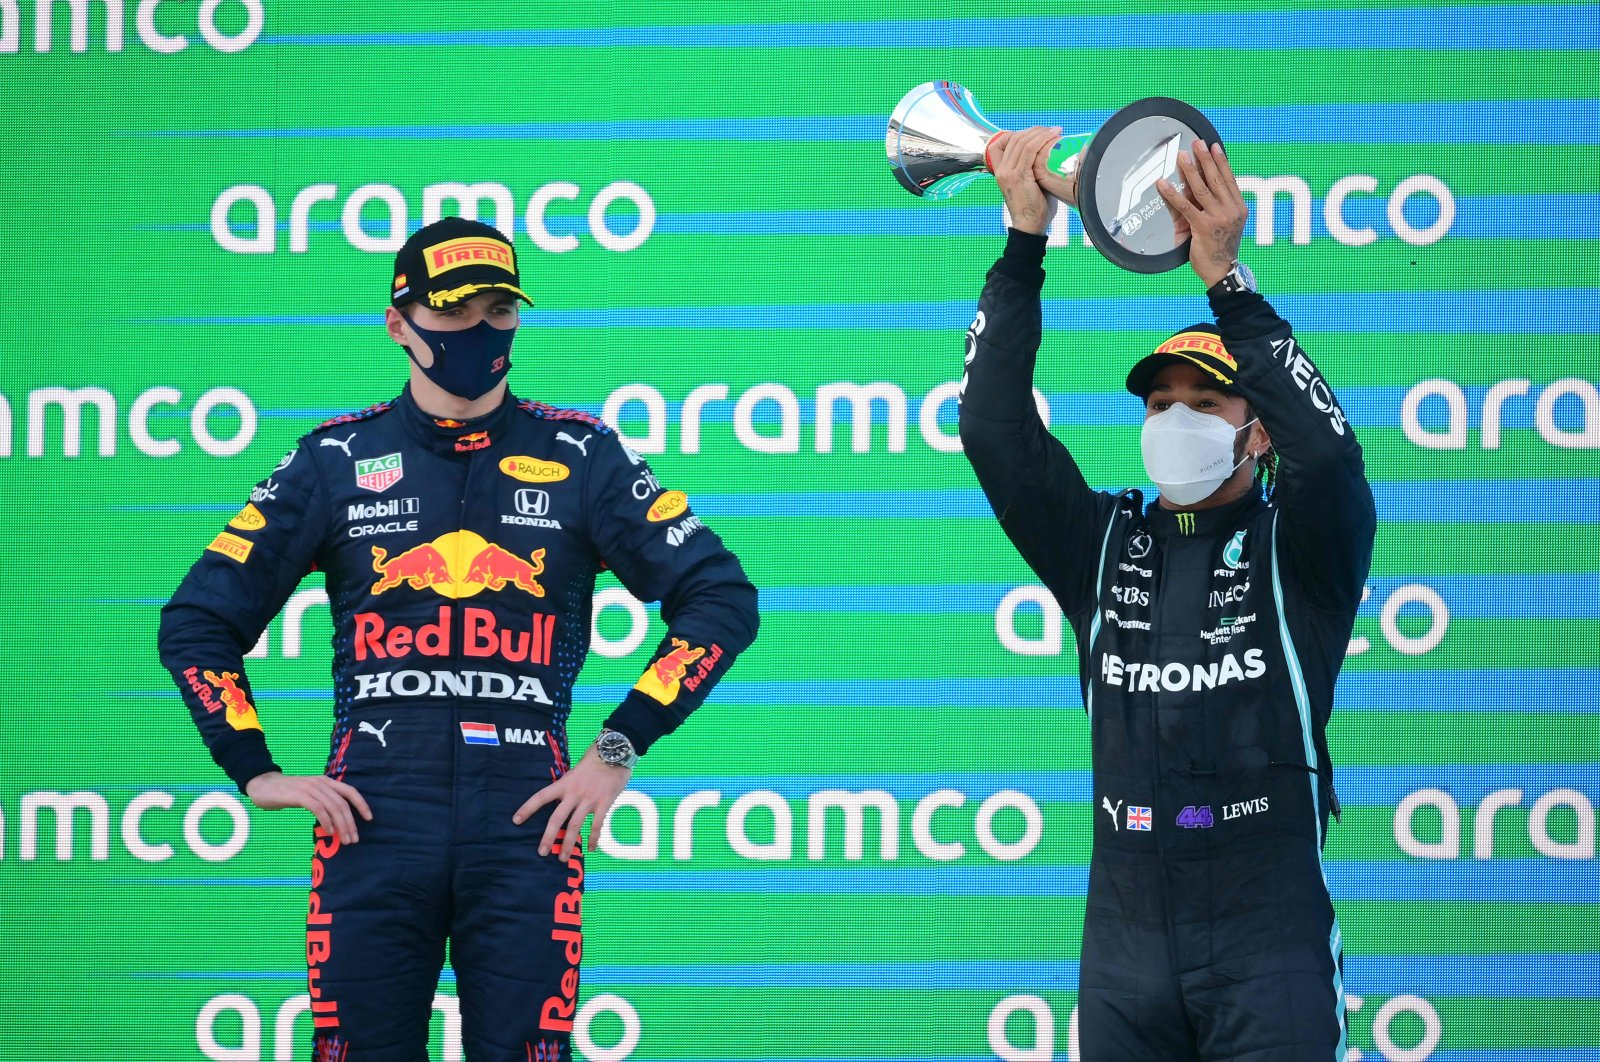 Mercedes' British driver Lewis Hamilton (R) celebrates on the podium next to Red Bull's Dutch driver Max Verstappen after the Spanish Grand Prix at the Circuit de Catalunya, Barcelona, Spain, May 9, 2021. (AFP Photo)